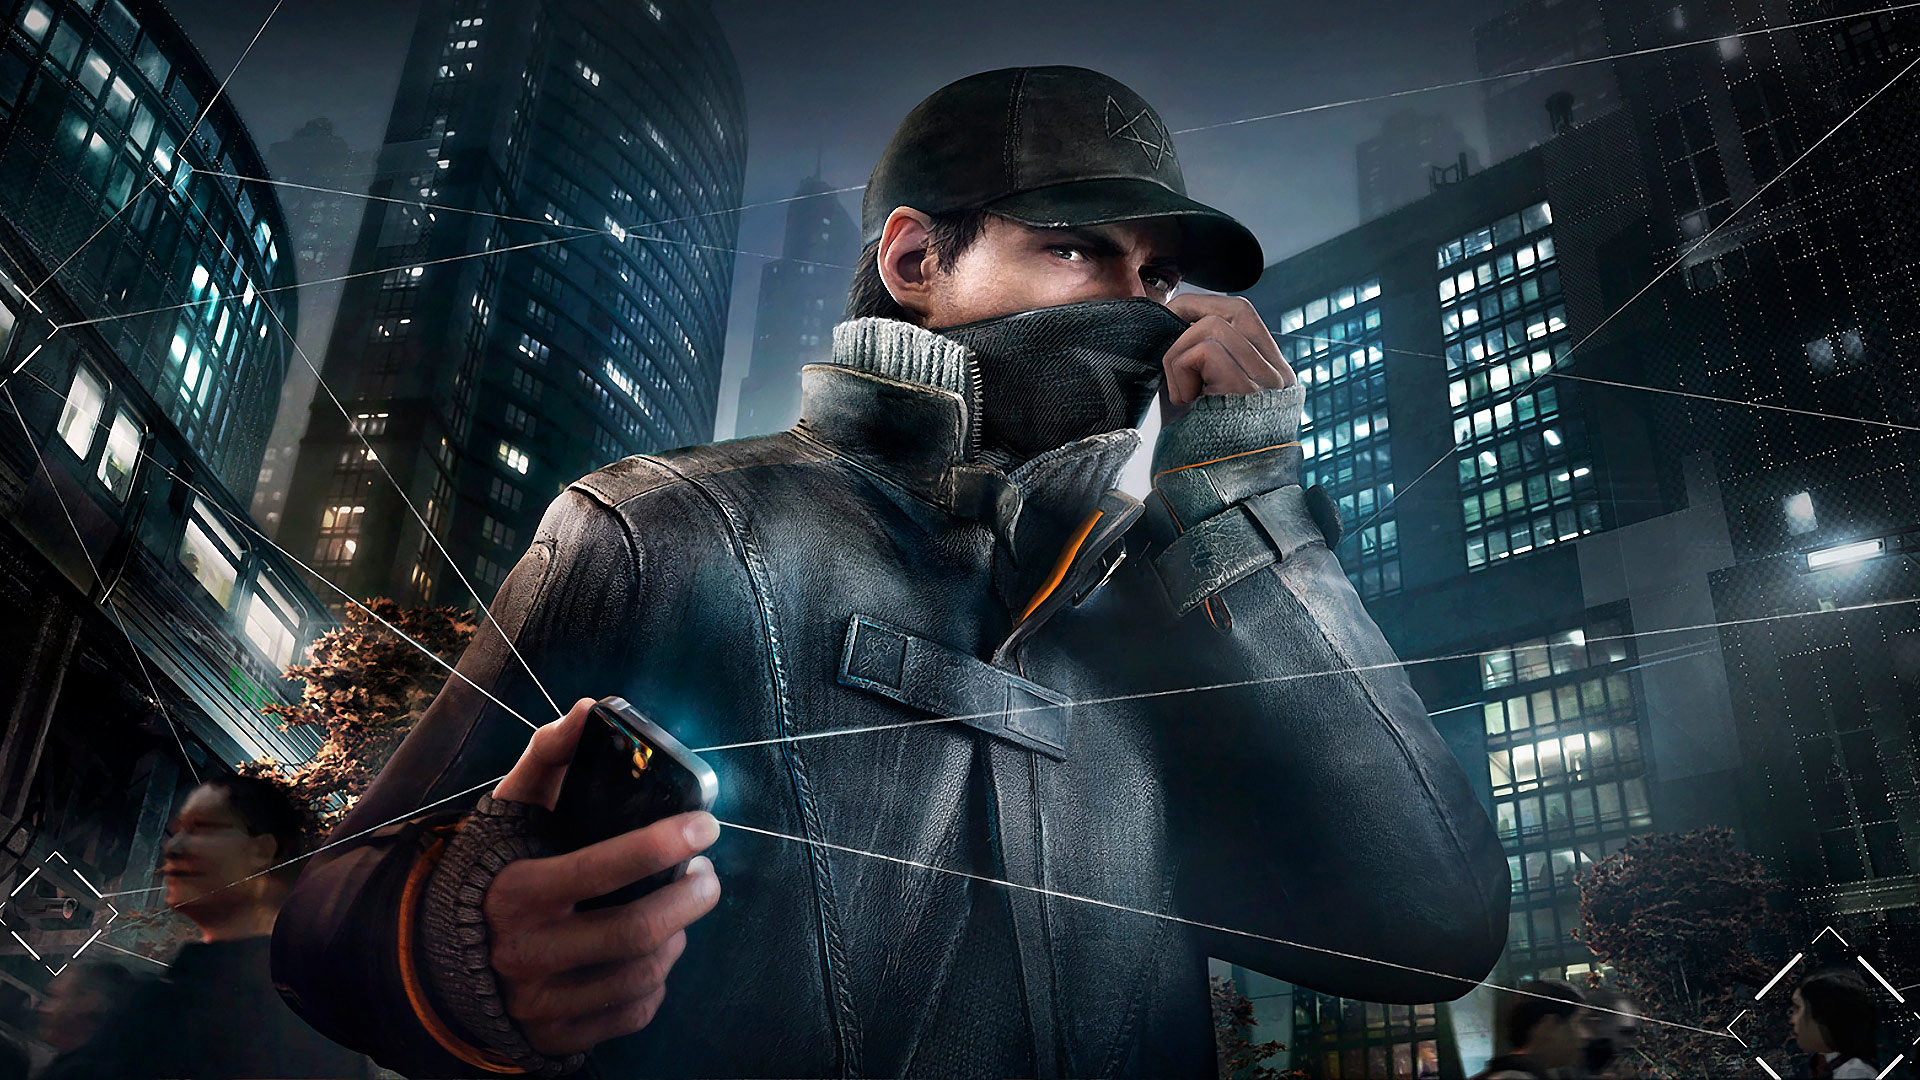 watch dogs game wallpaper YouTuber Just Accidentally Announced New Ubisoft Game